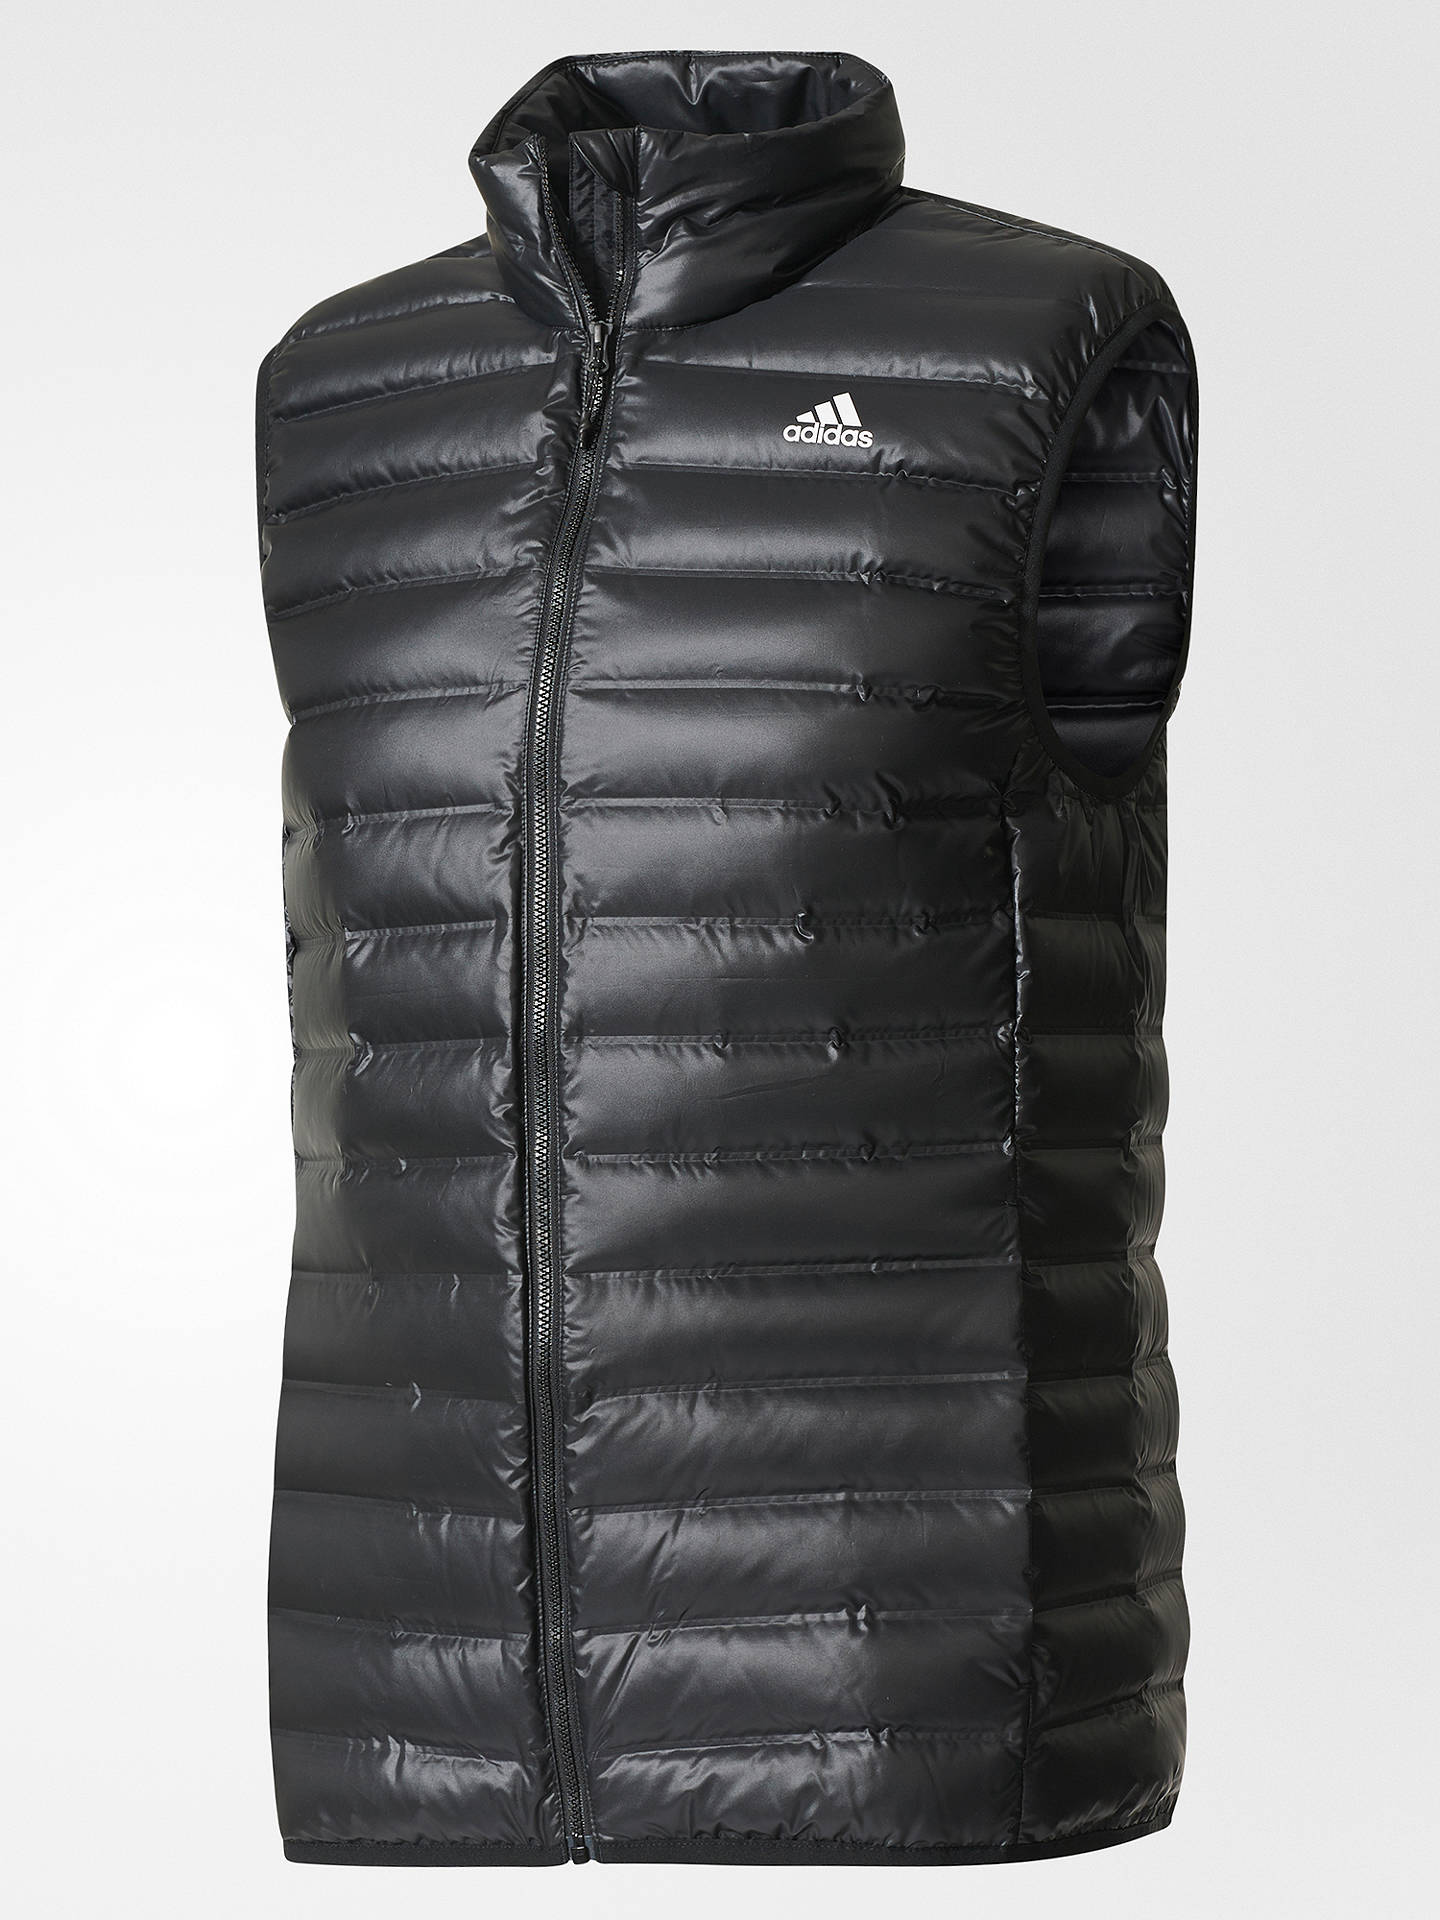 Buyadidas Varilite Down Vest Gilet, Black, S Online at johnlewis.com